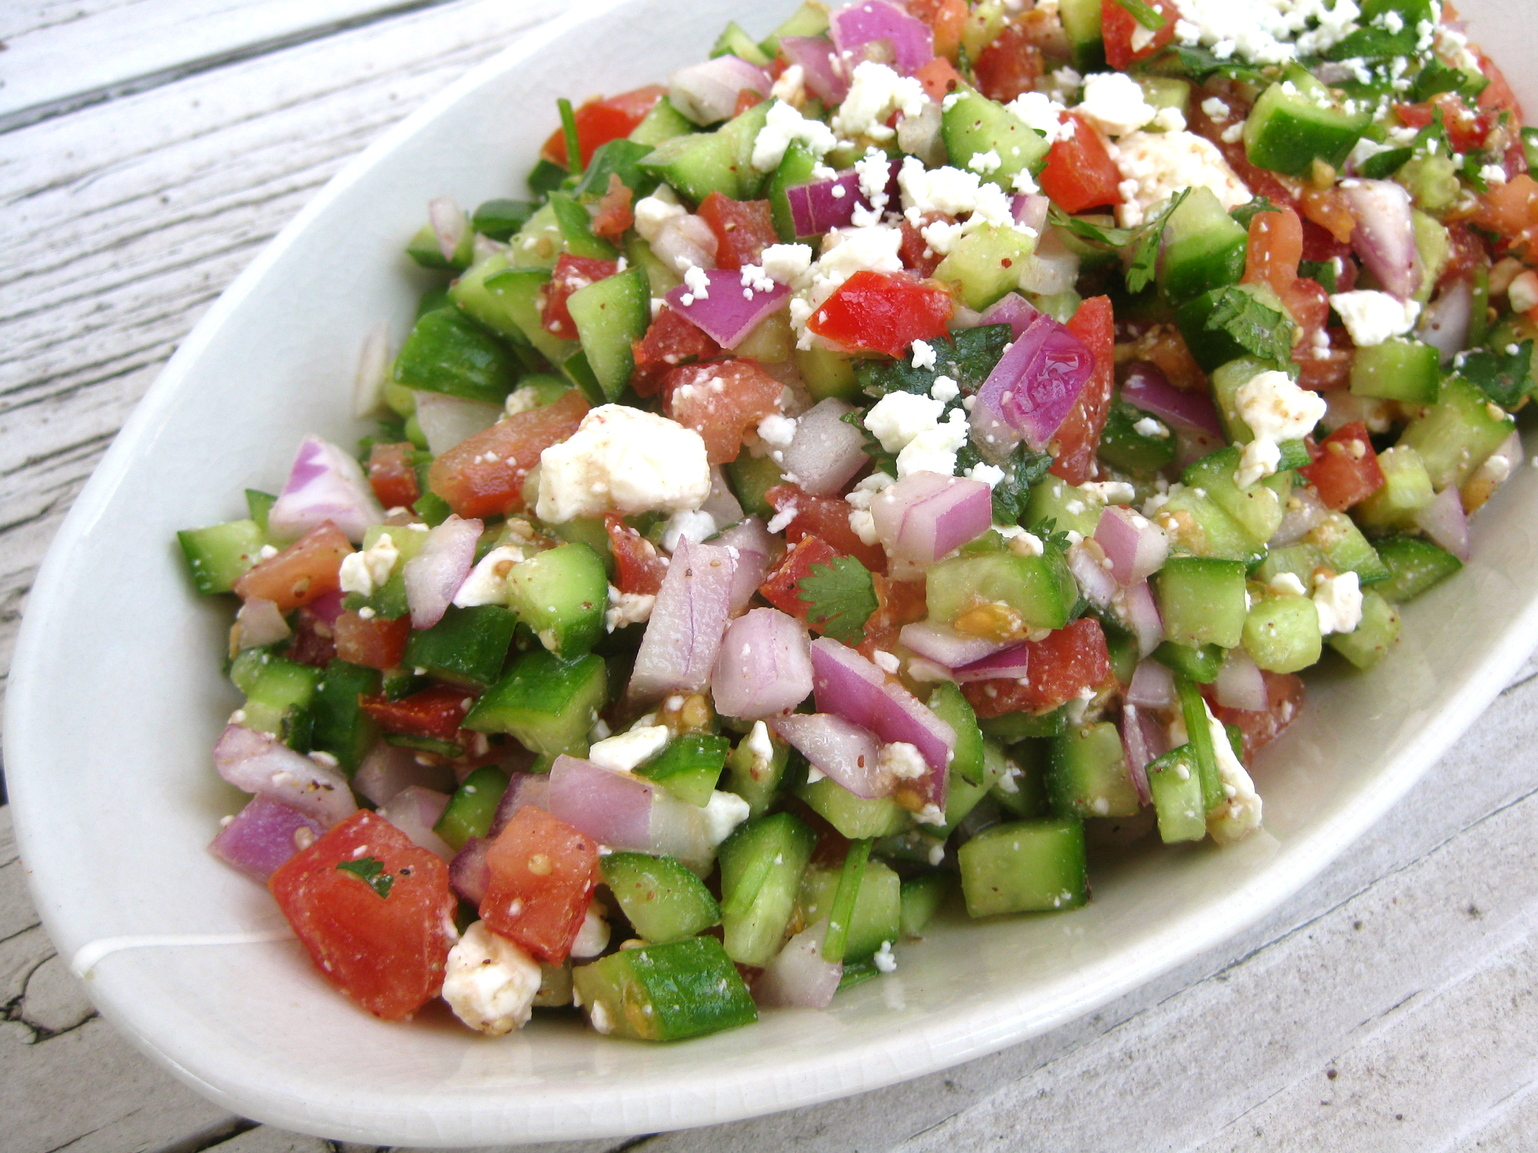 ... soon as the weather gets warm, I start craving cool, summery salads